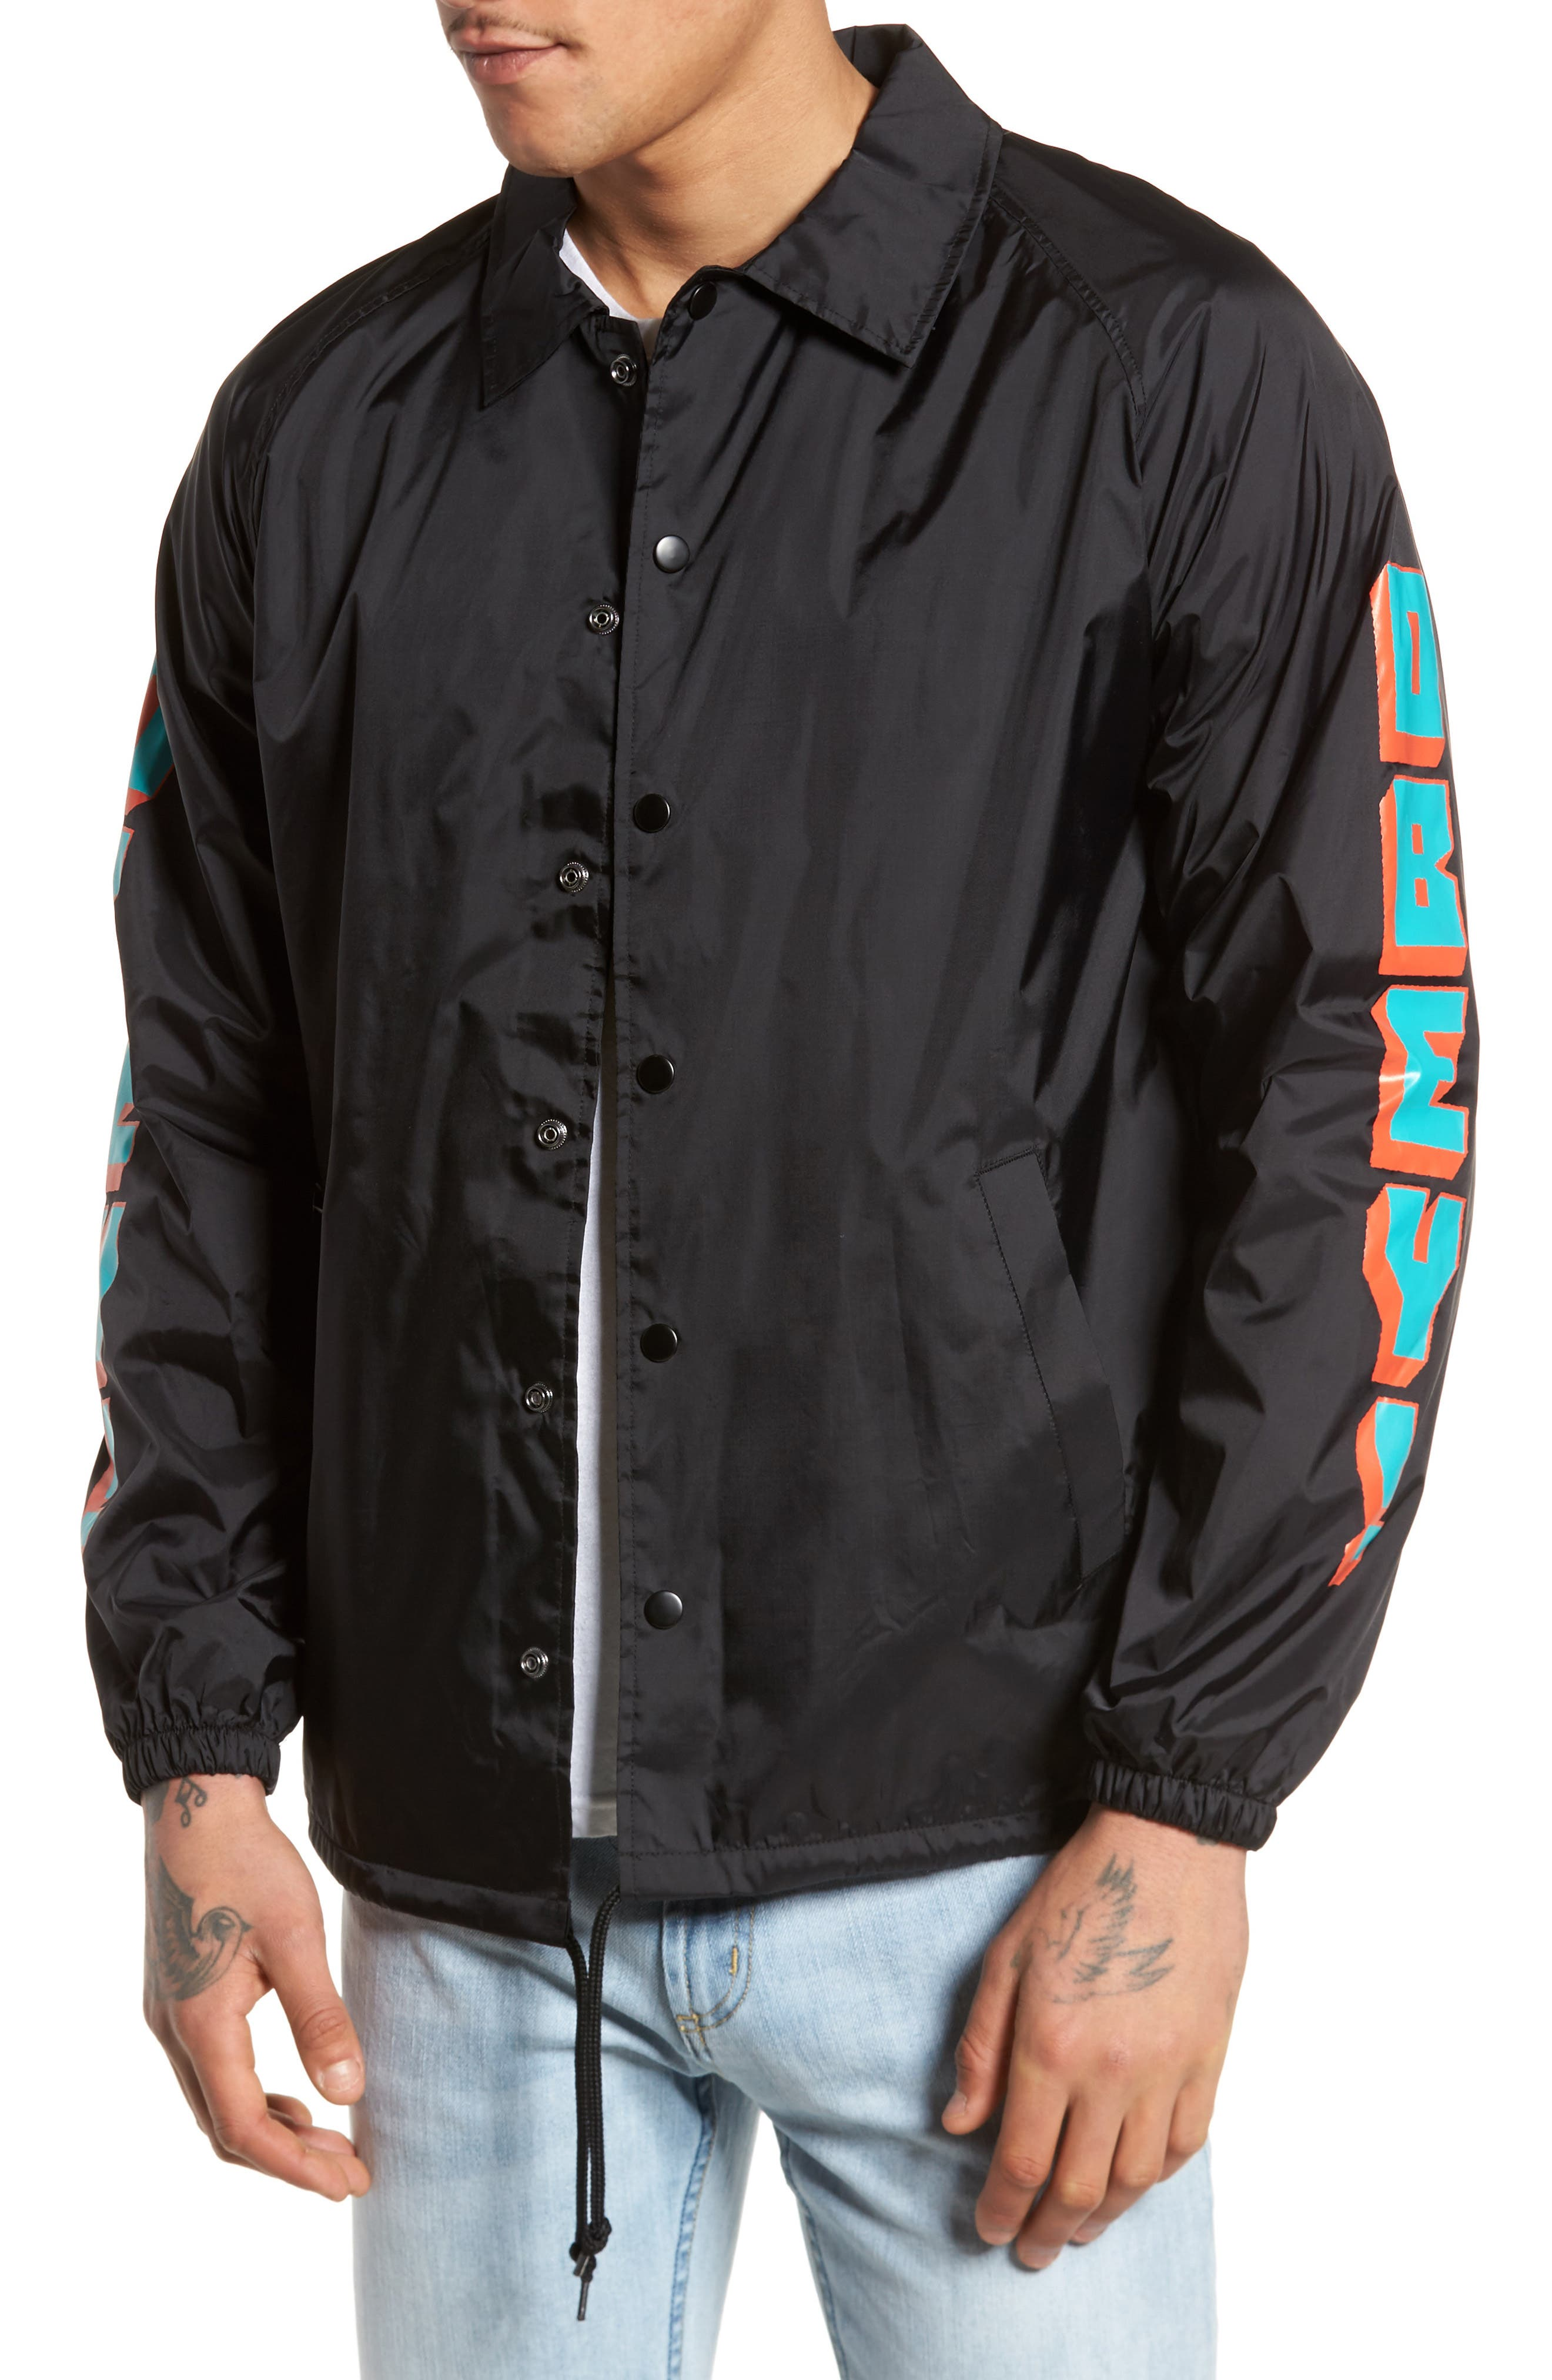 New World 2 Coach's Jacket,                             Main thumbnail 1, color,                             001